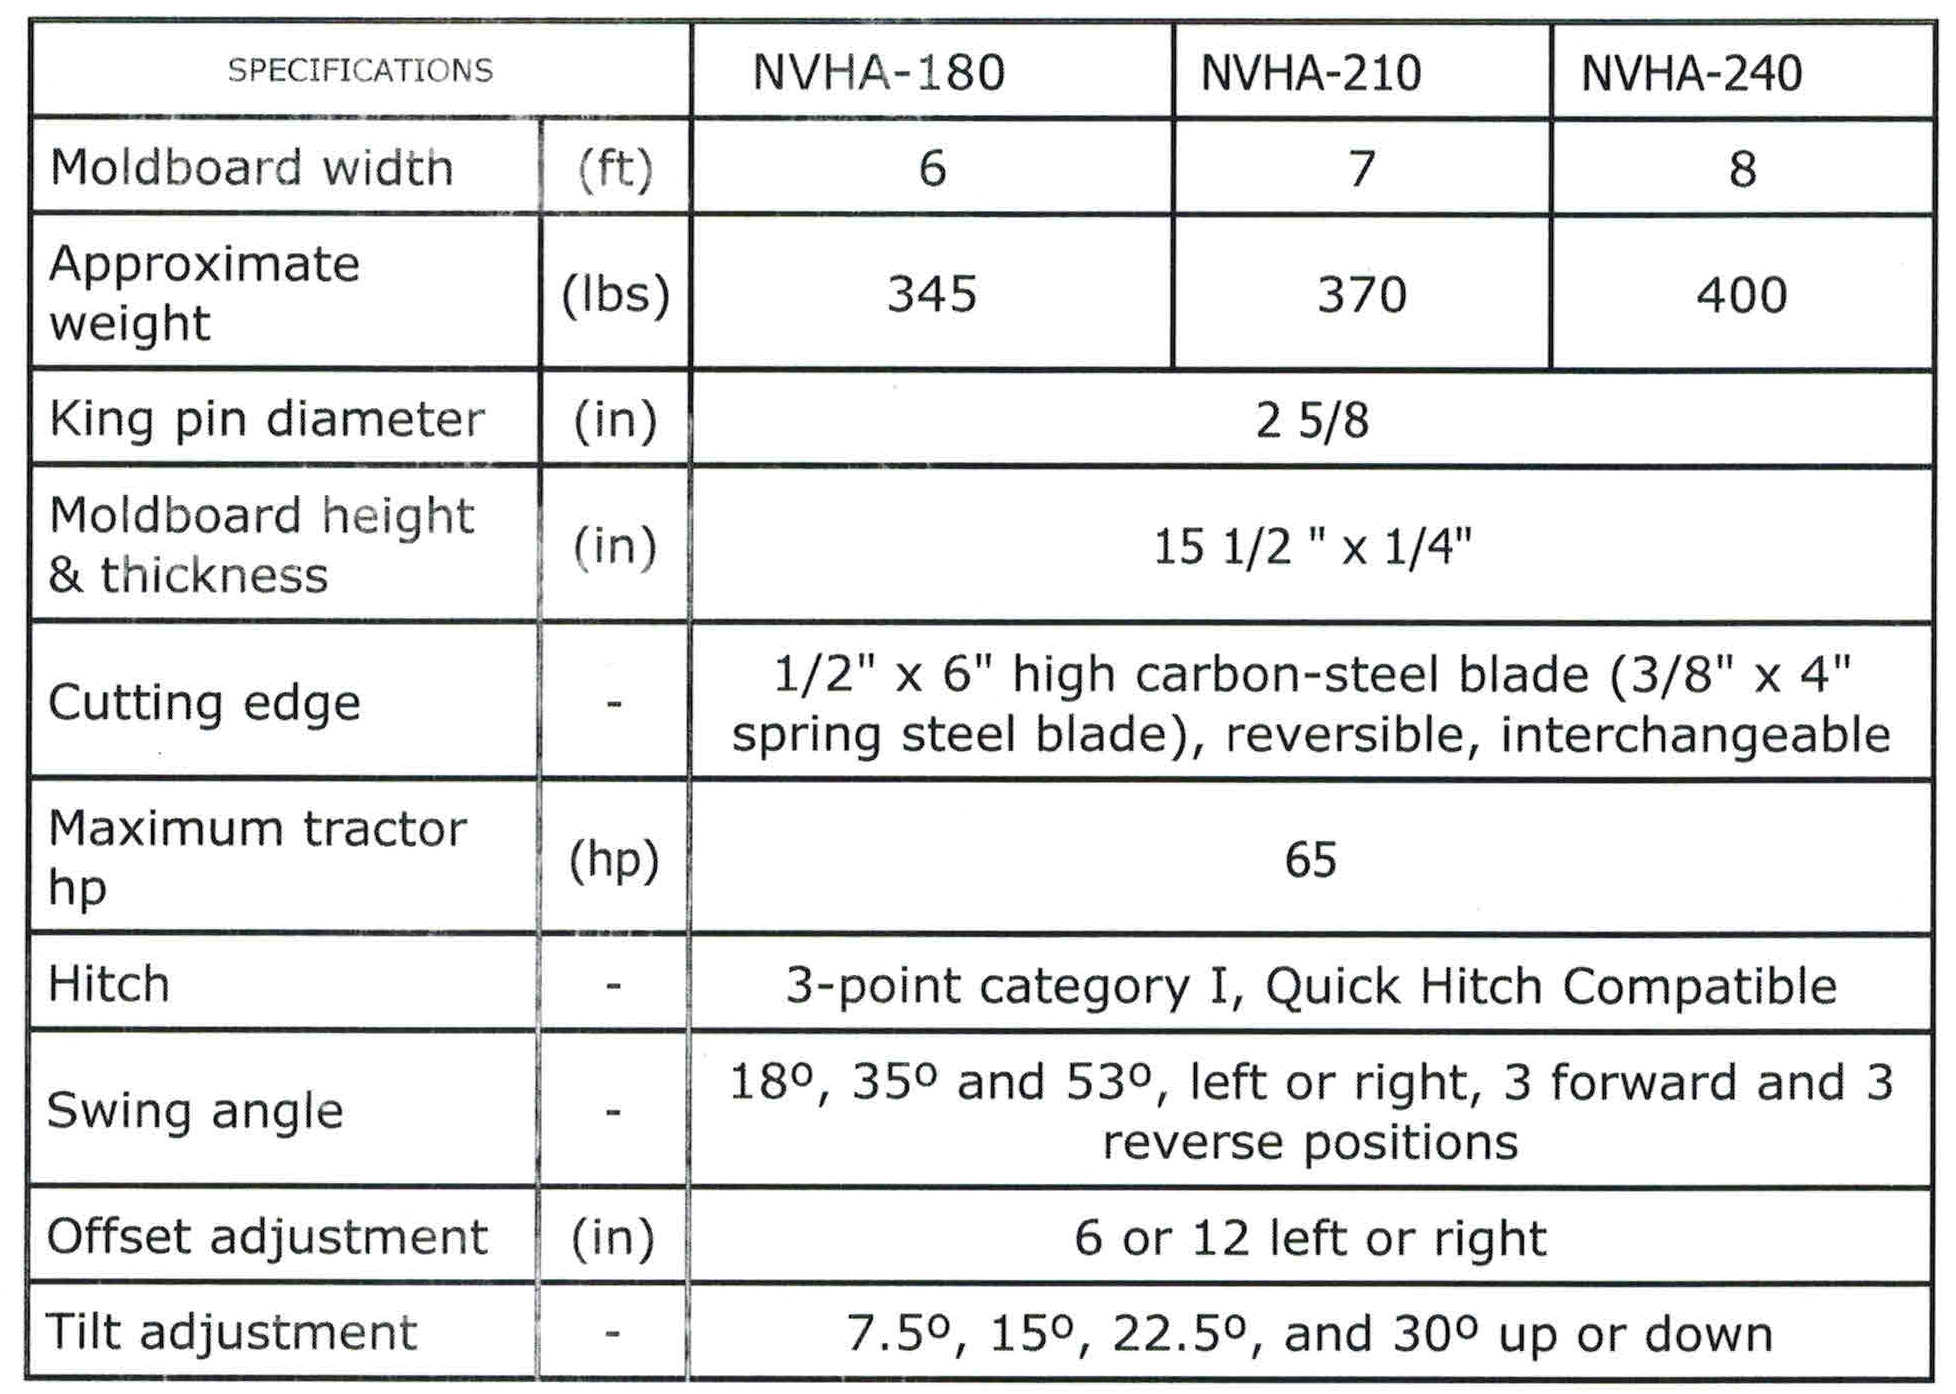 Specifications For NVHA Series Tractor Blades